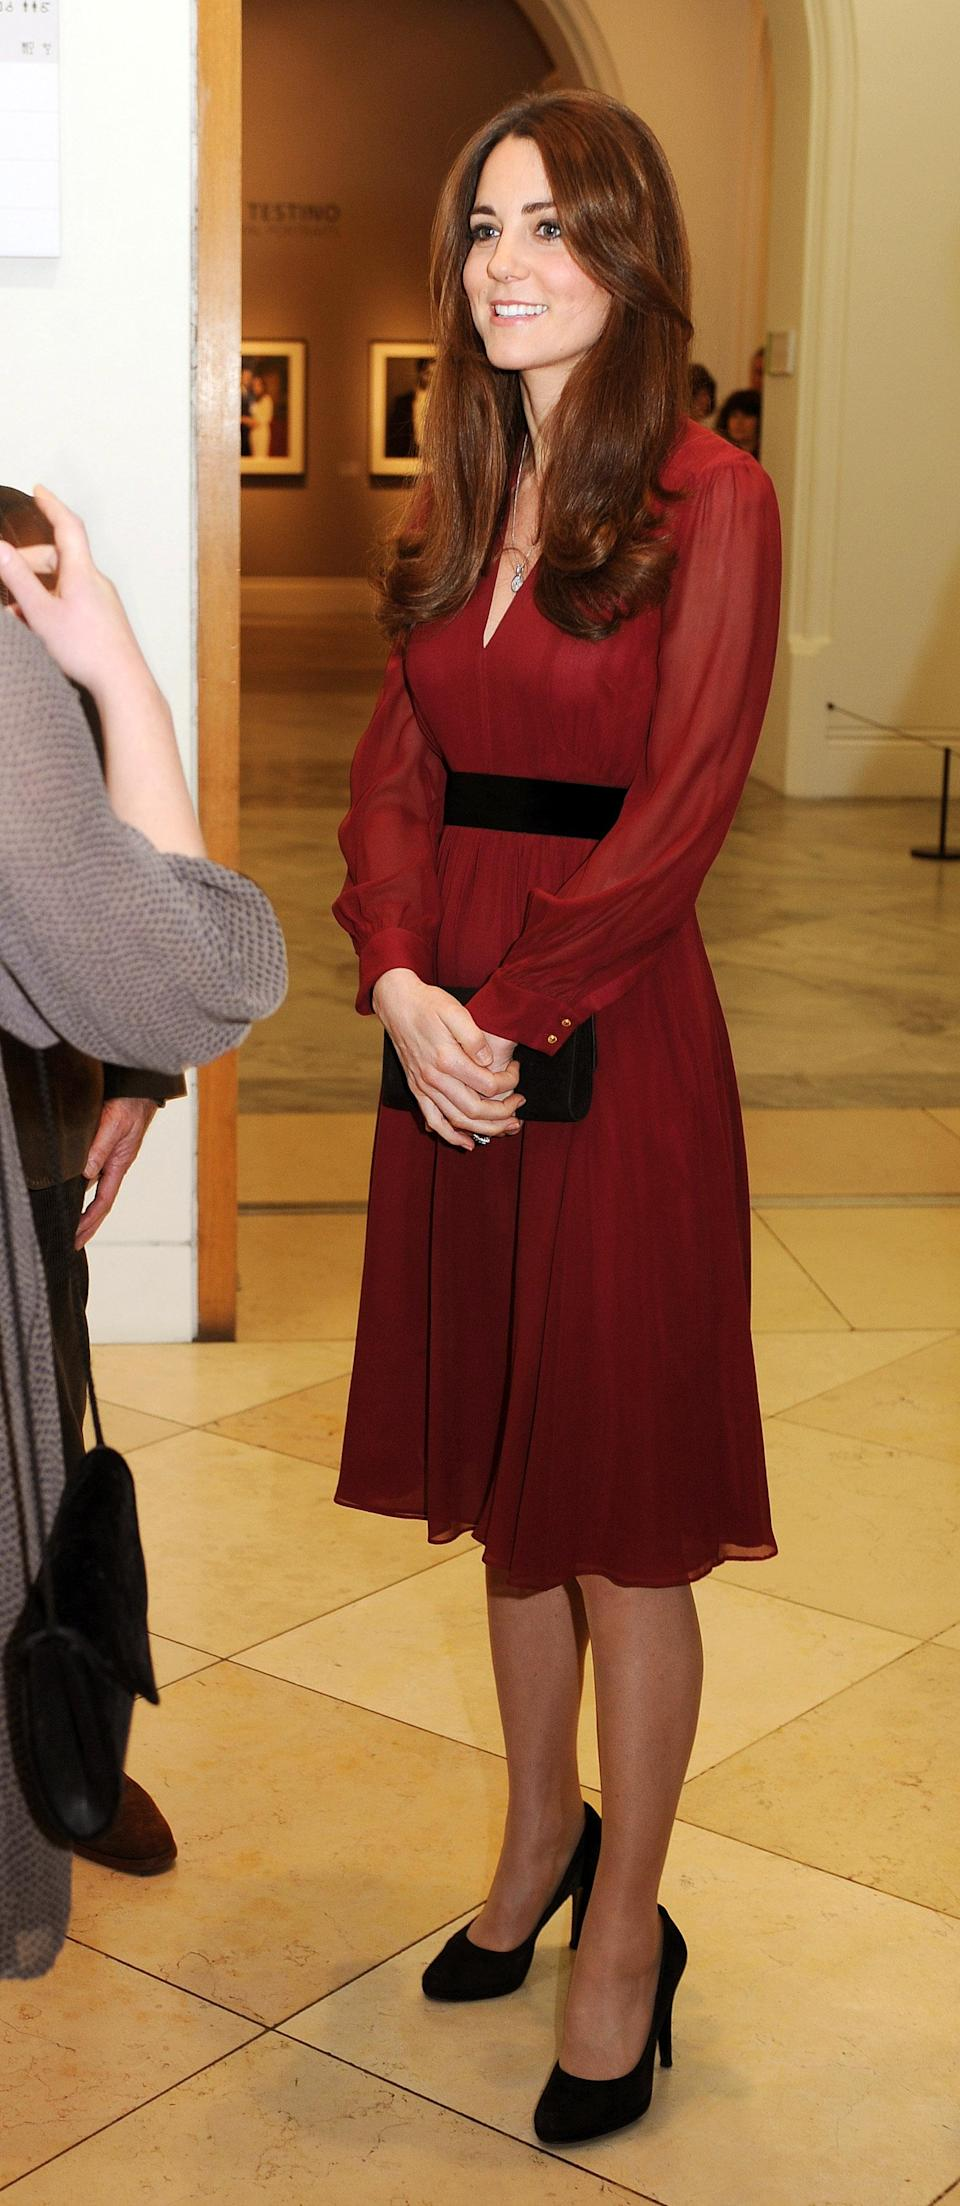 <p>On January 11 2013, the Duchess of Cambridge donned a burgundy-hued dress by Whistles to a private viewing at the National Portrait Gallery. Artist Paul Emsley famously unveiled his portrait of the royal on the evening. <em>[Photo: Getty]</em> </p>